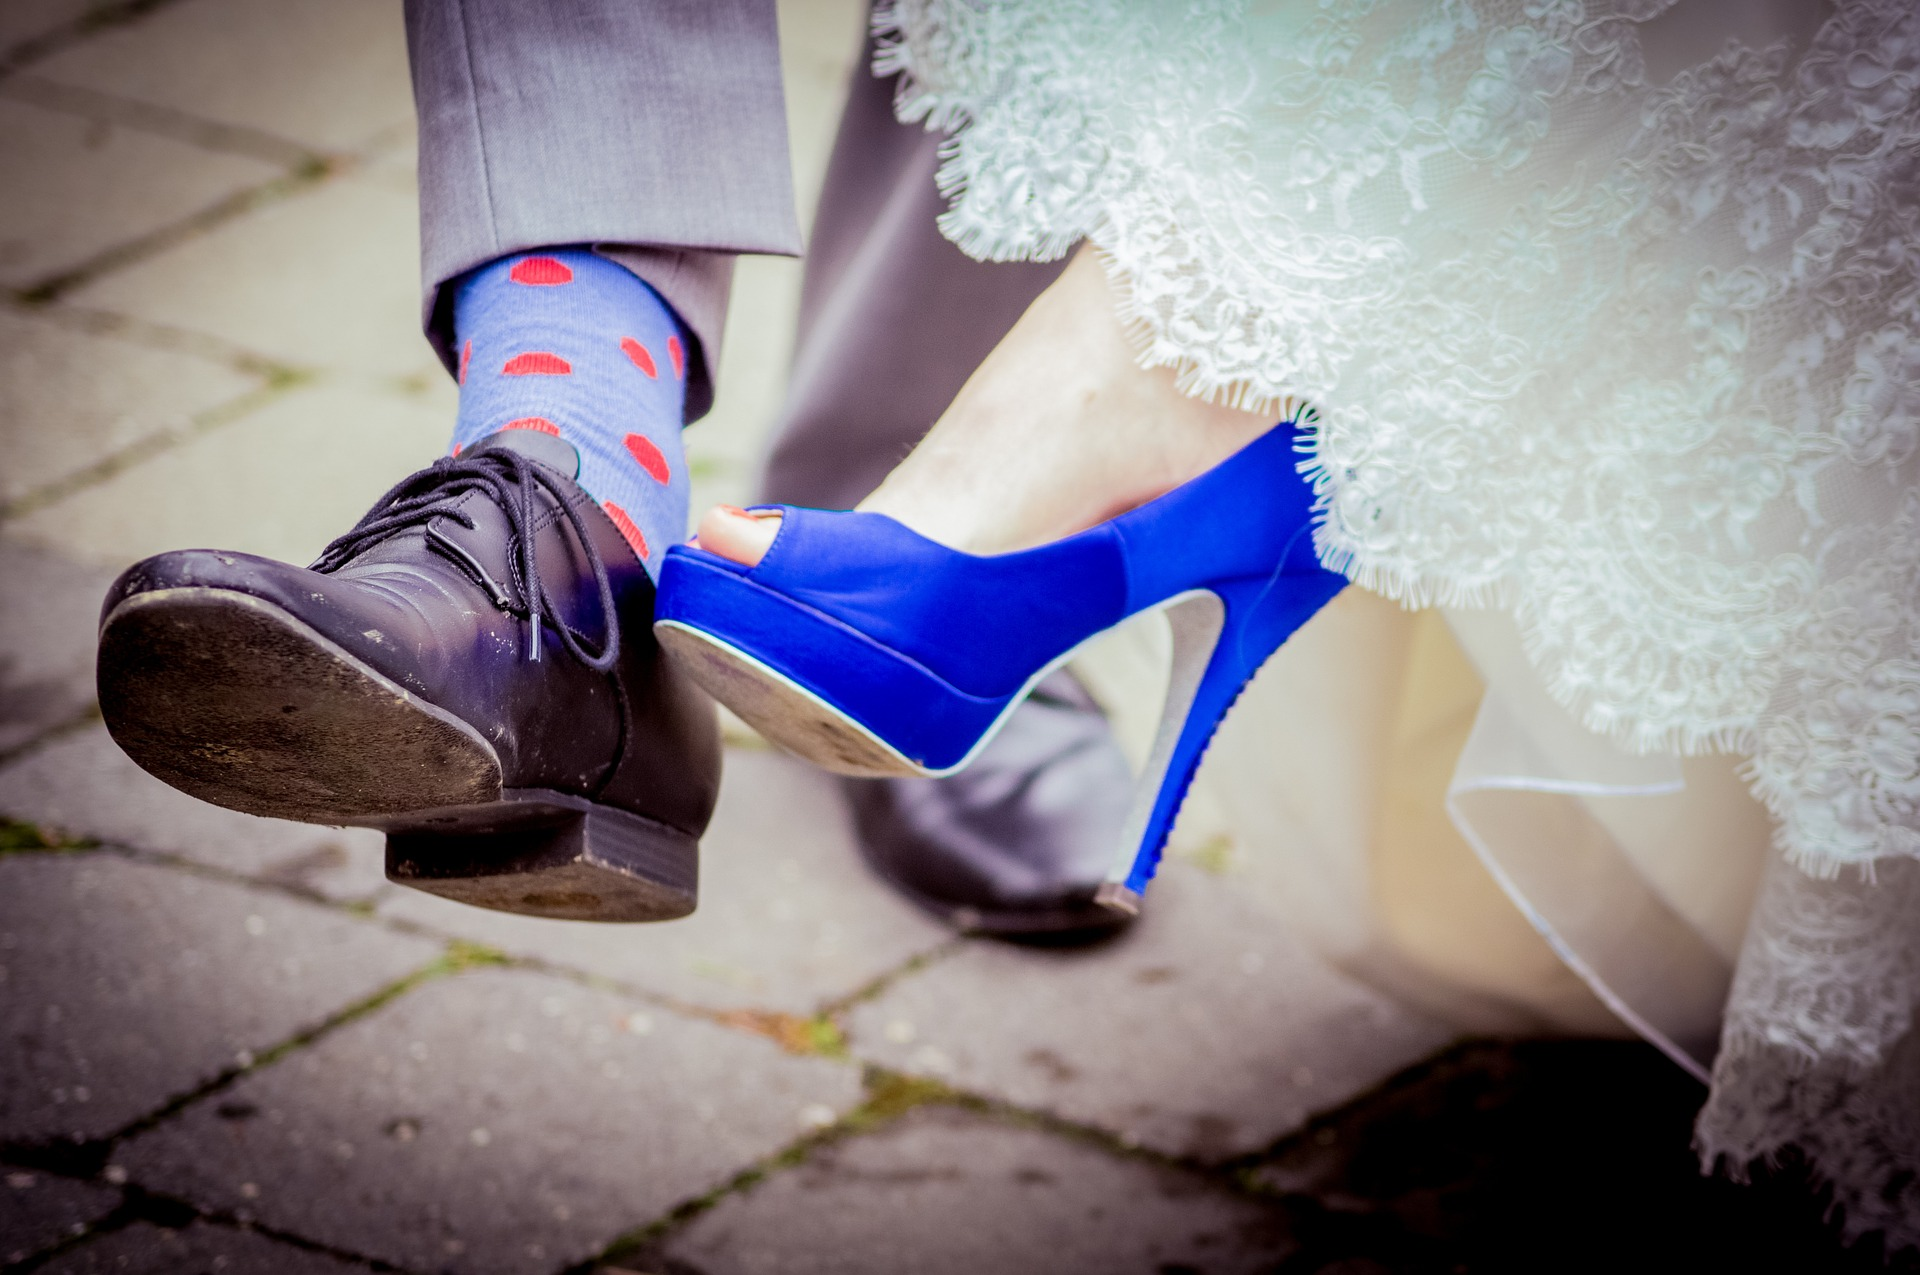 wedding-shoes-1470677_1920.jpg